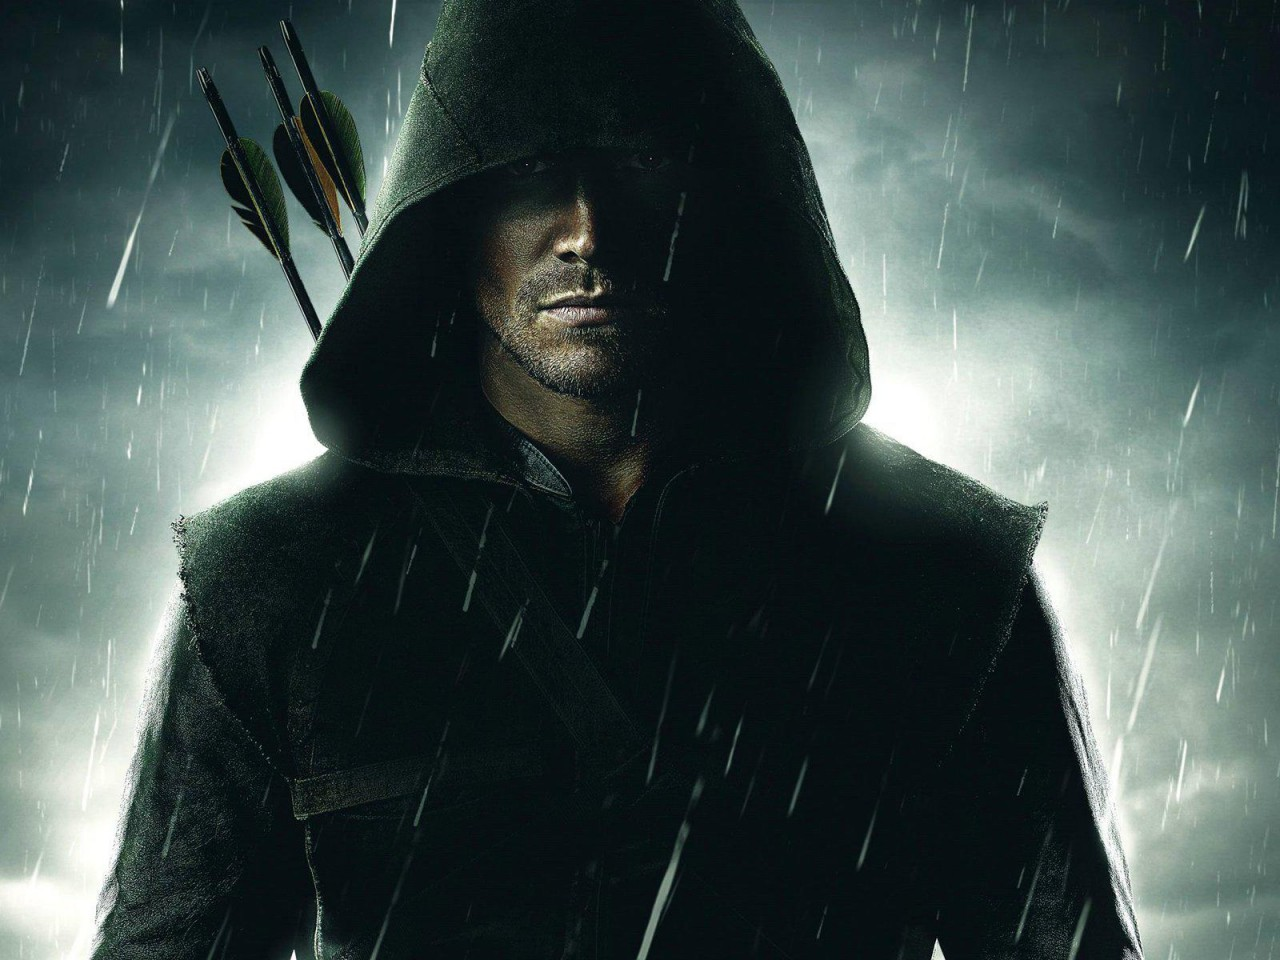 Green Arrow Action Hero Wallpaper Hd Wallpapers